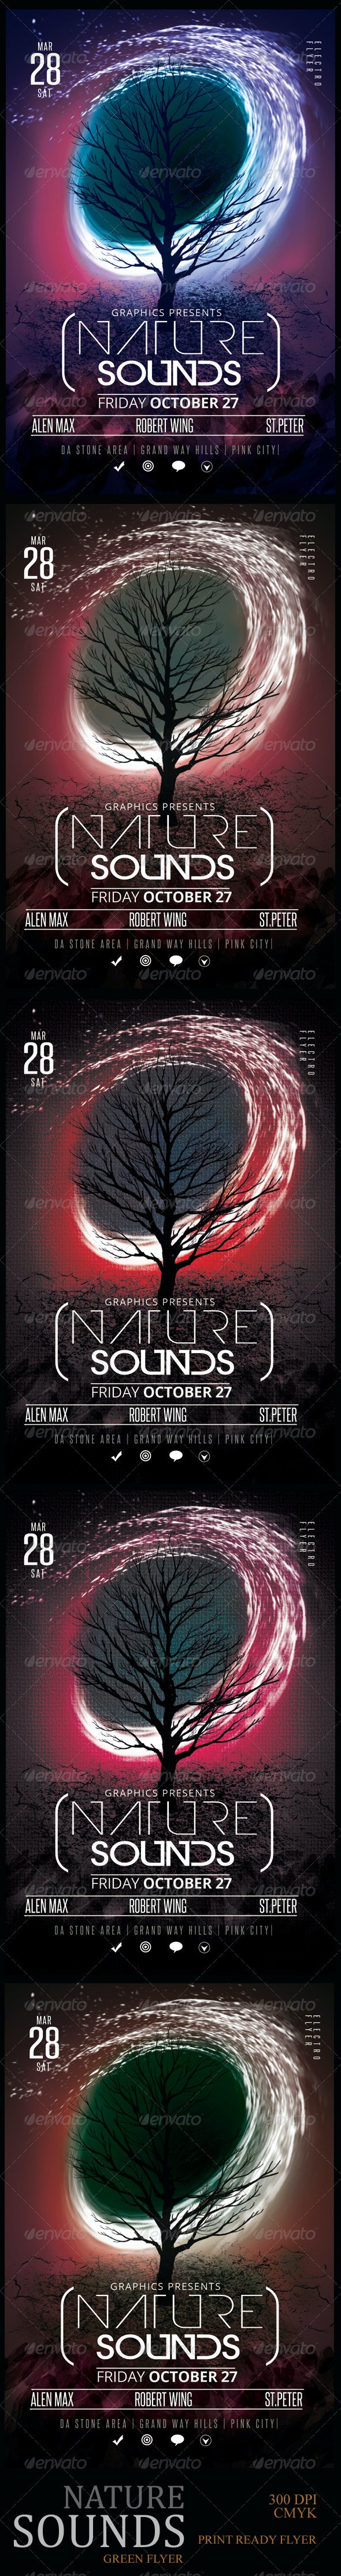 Nature Sounds Party Flyer Template - Clubs & Parties Events